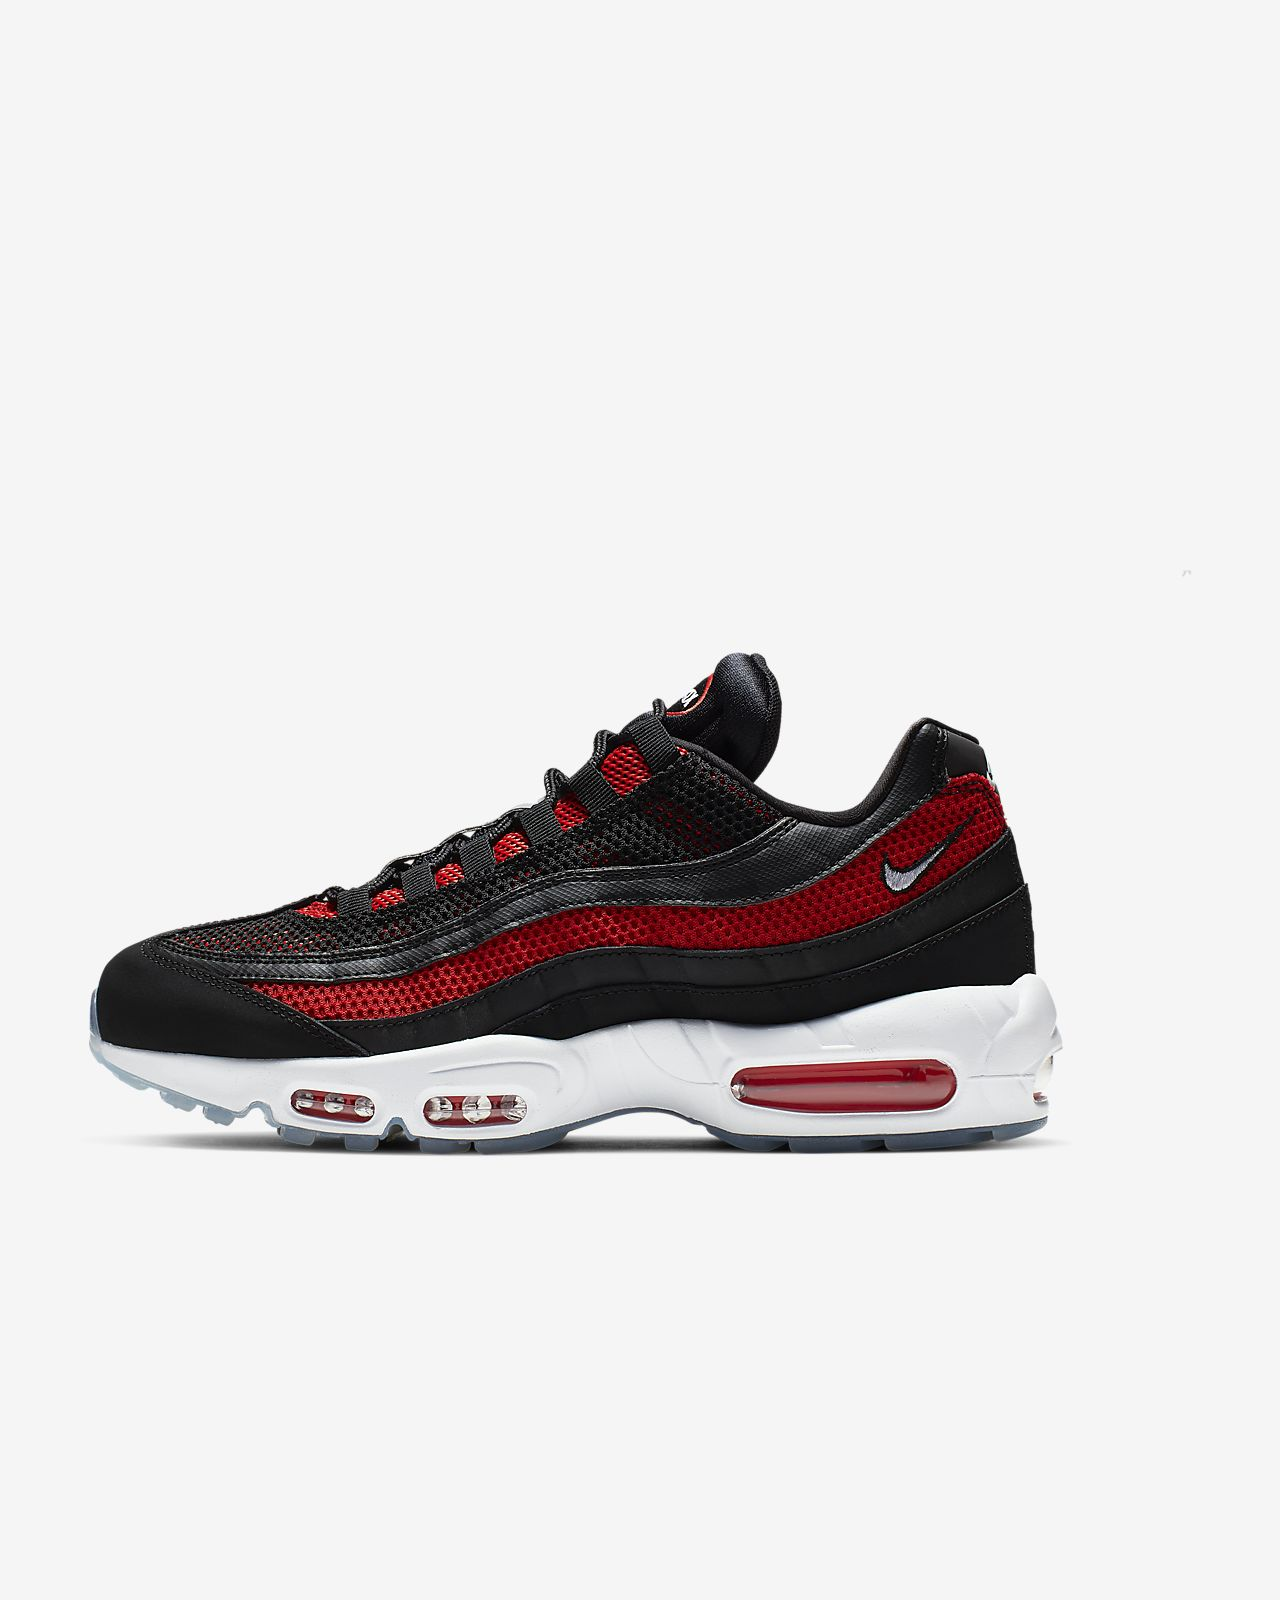 innovative design 1e098 ac52d Men s Shoe. Nike Air Max 95 Essential